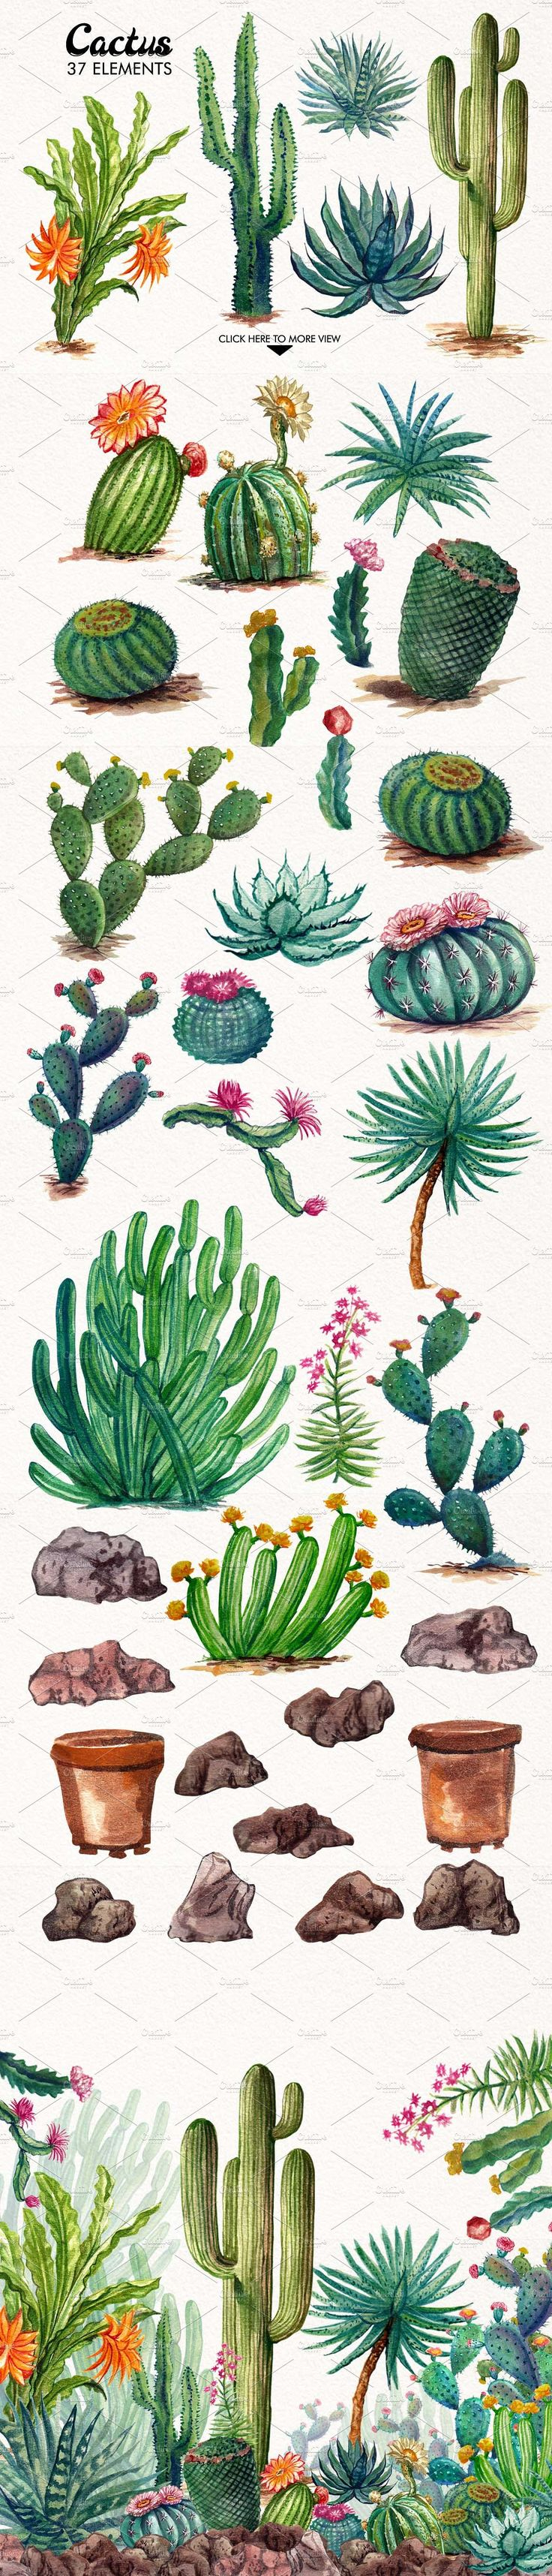 Watercolor Cactuses by iGRAPHOBIA on @creativemarket